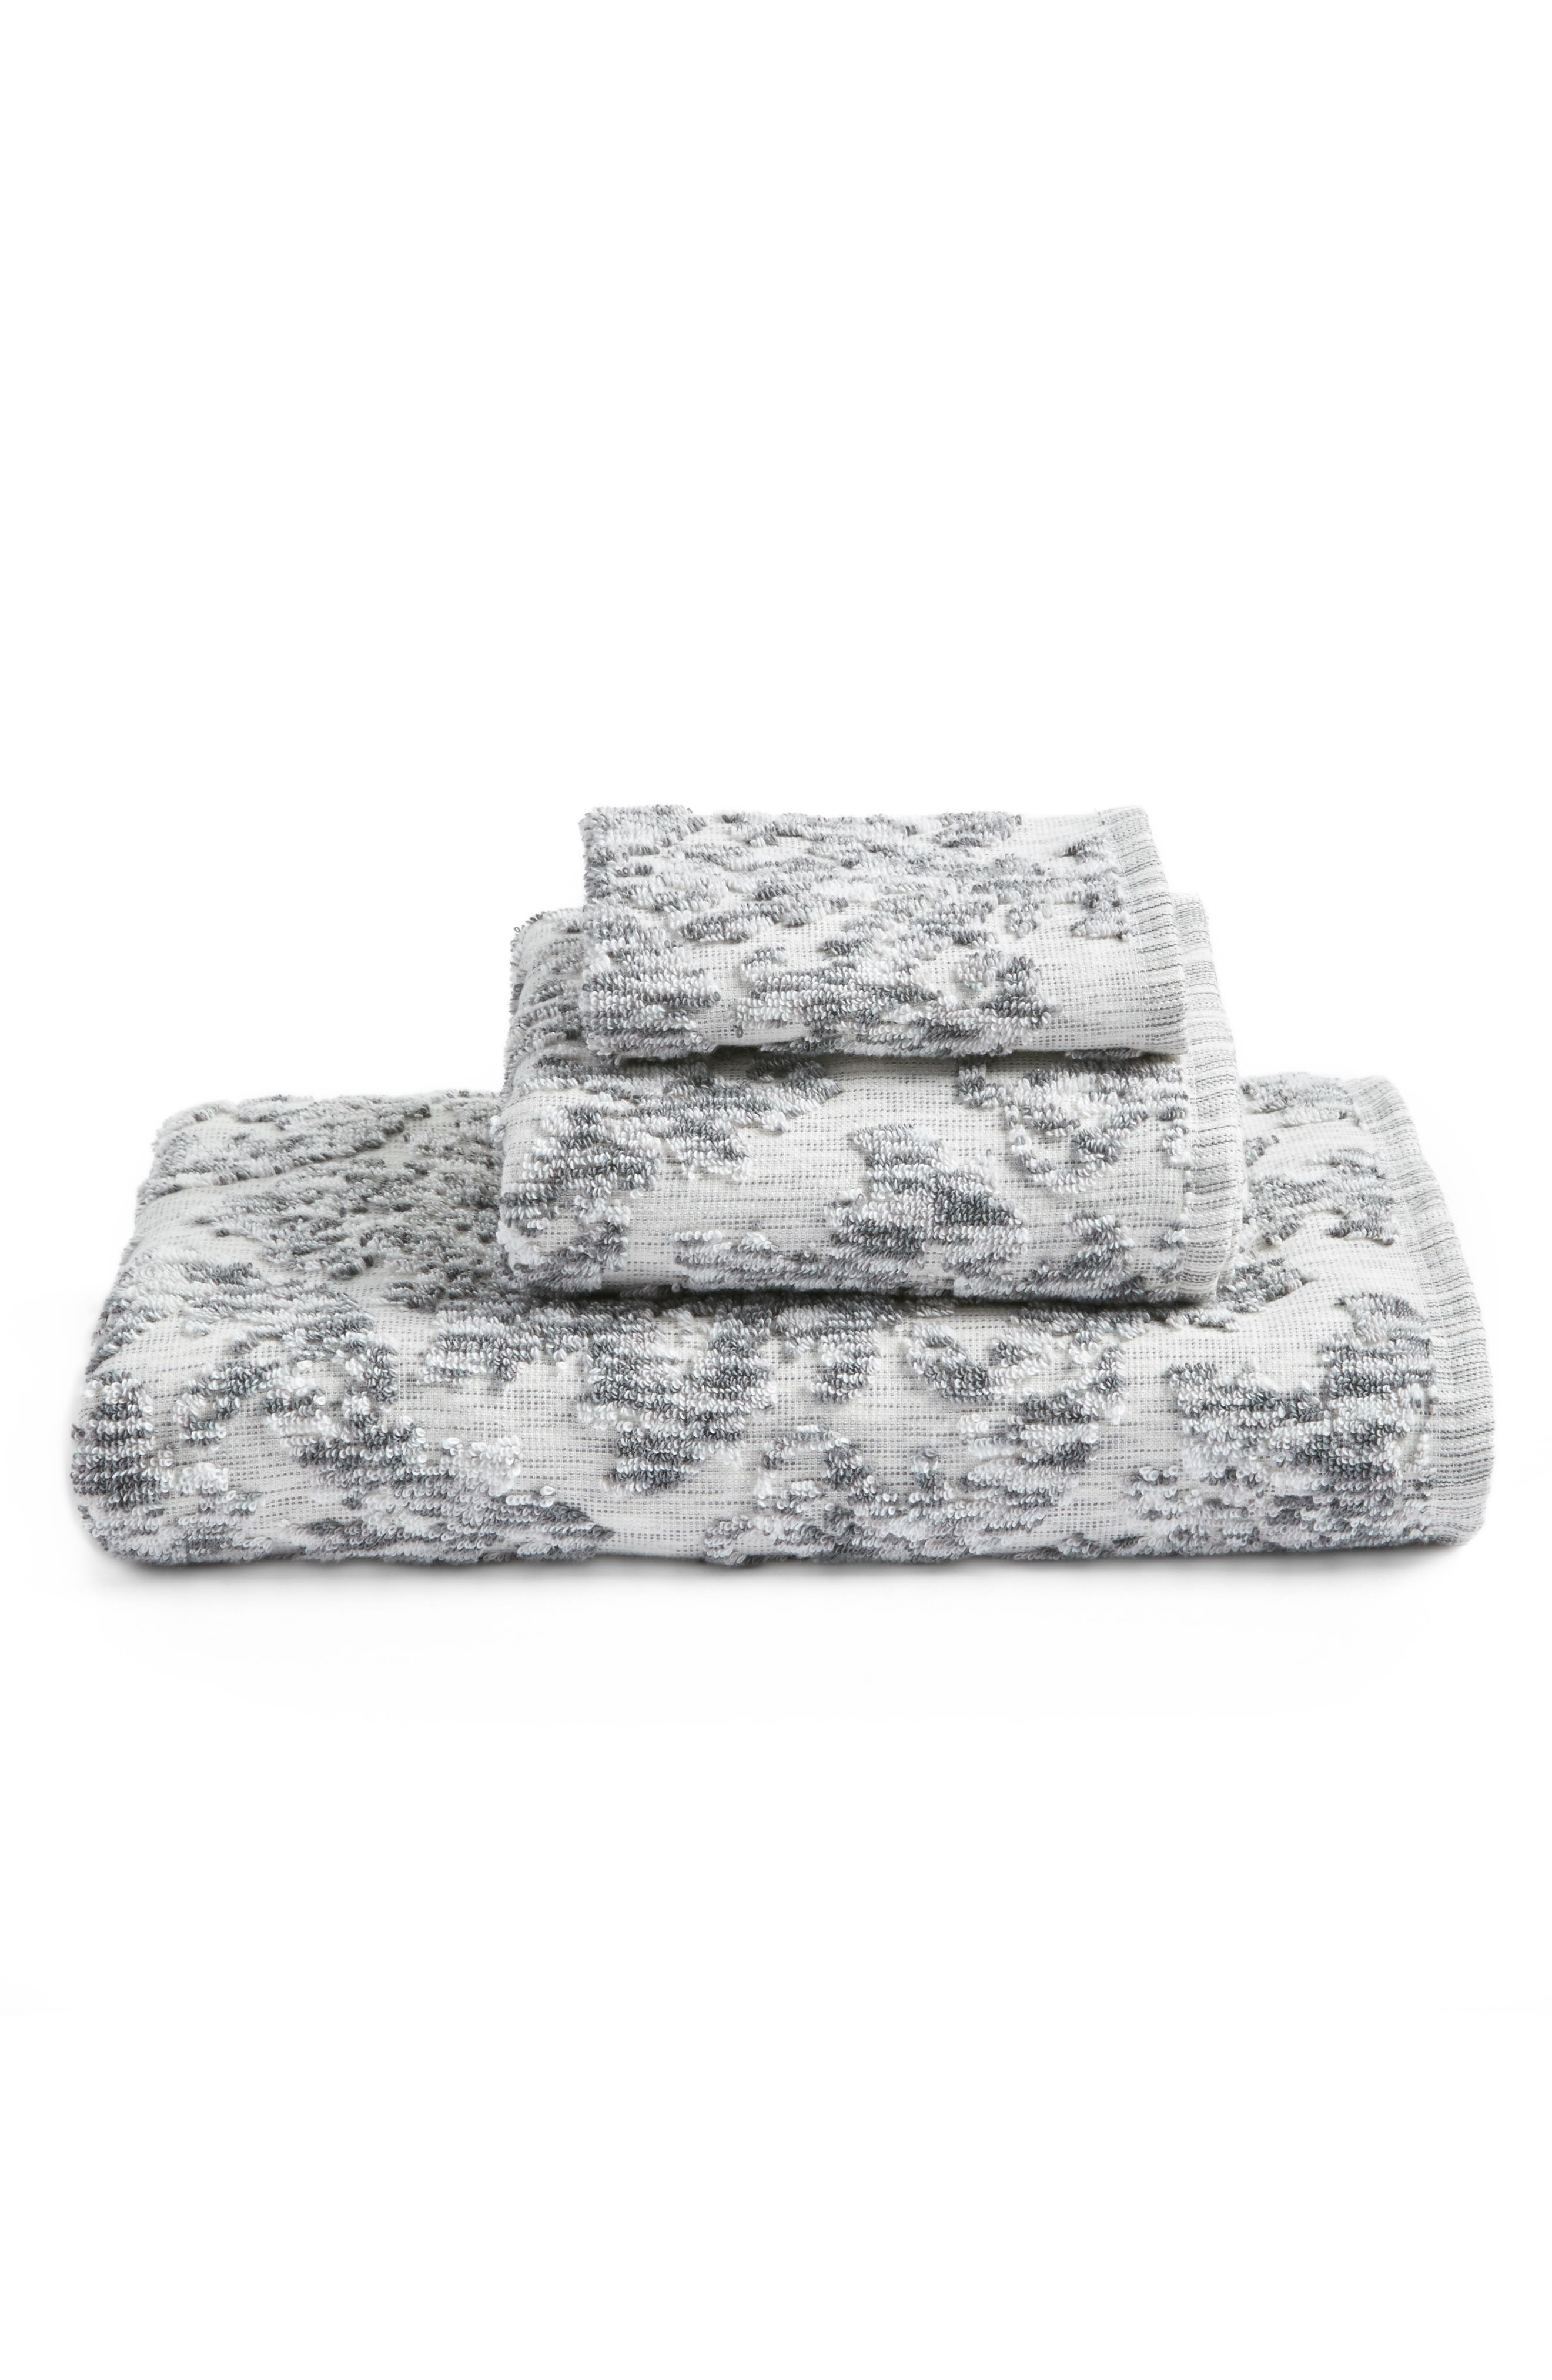 Easton Bath Towel,                             Alternate thumbnail 2, color,                             GREY FROST MULTI